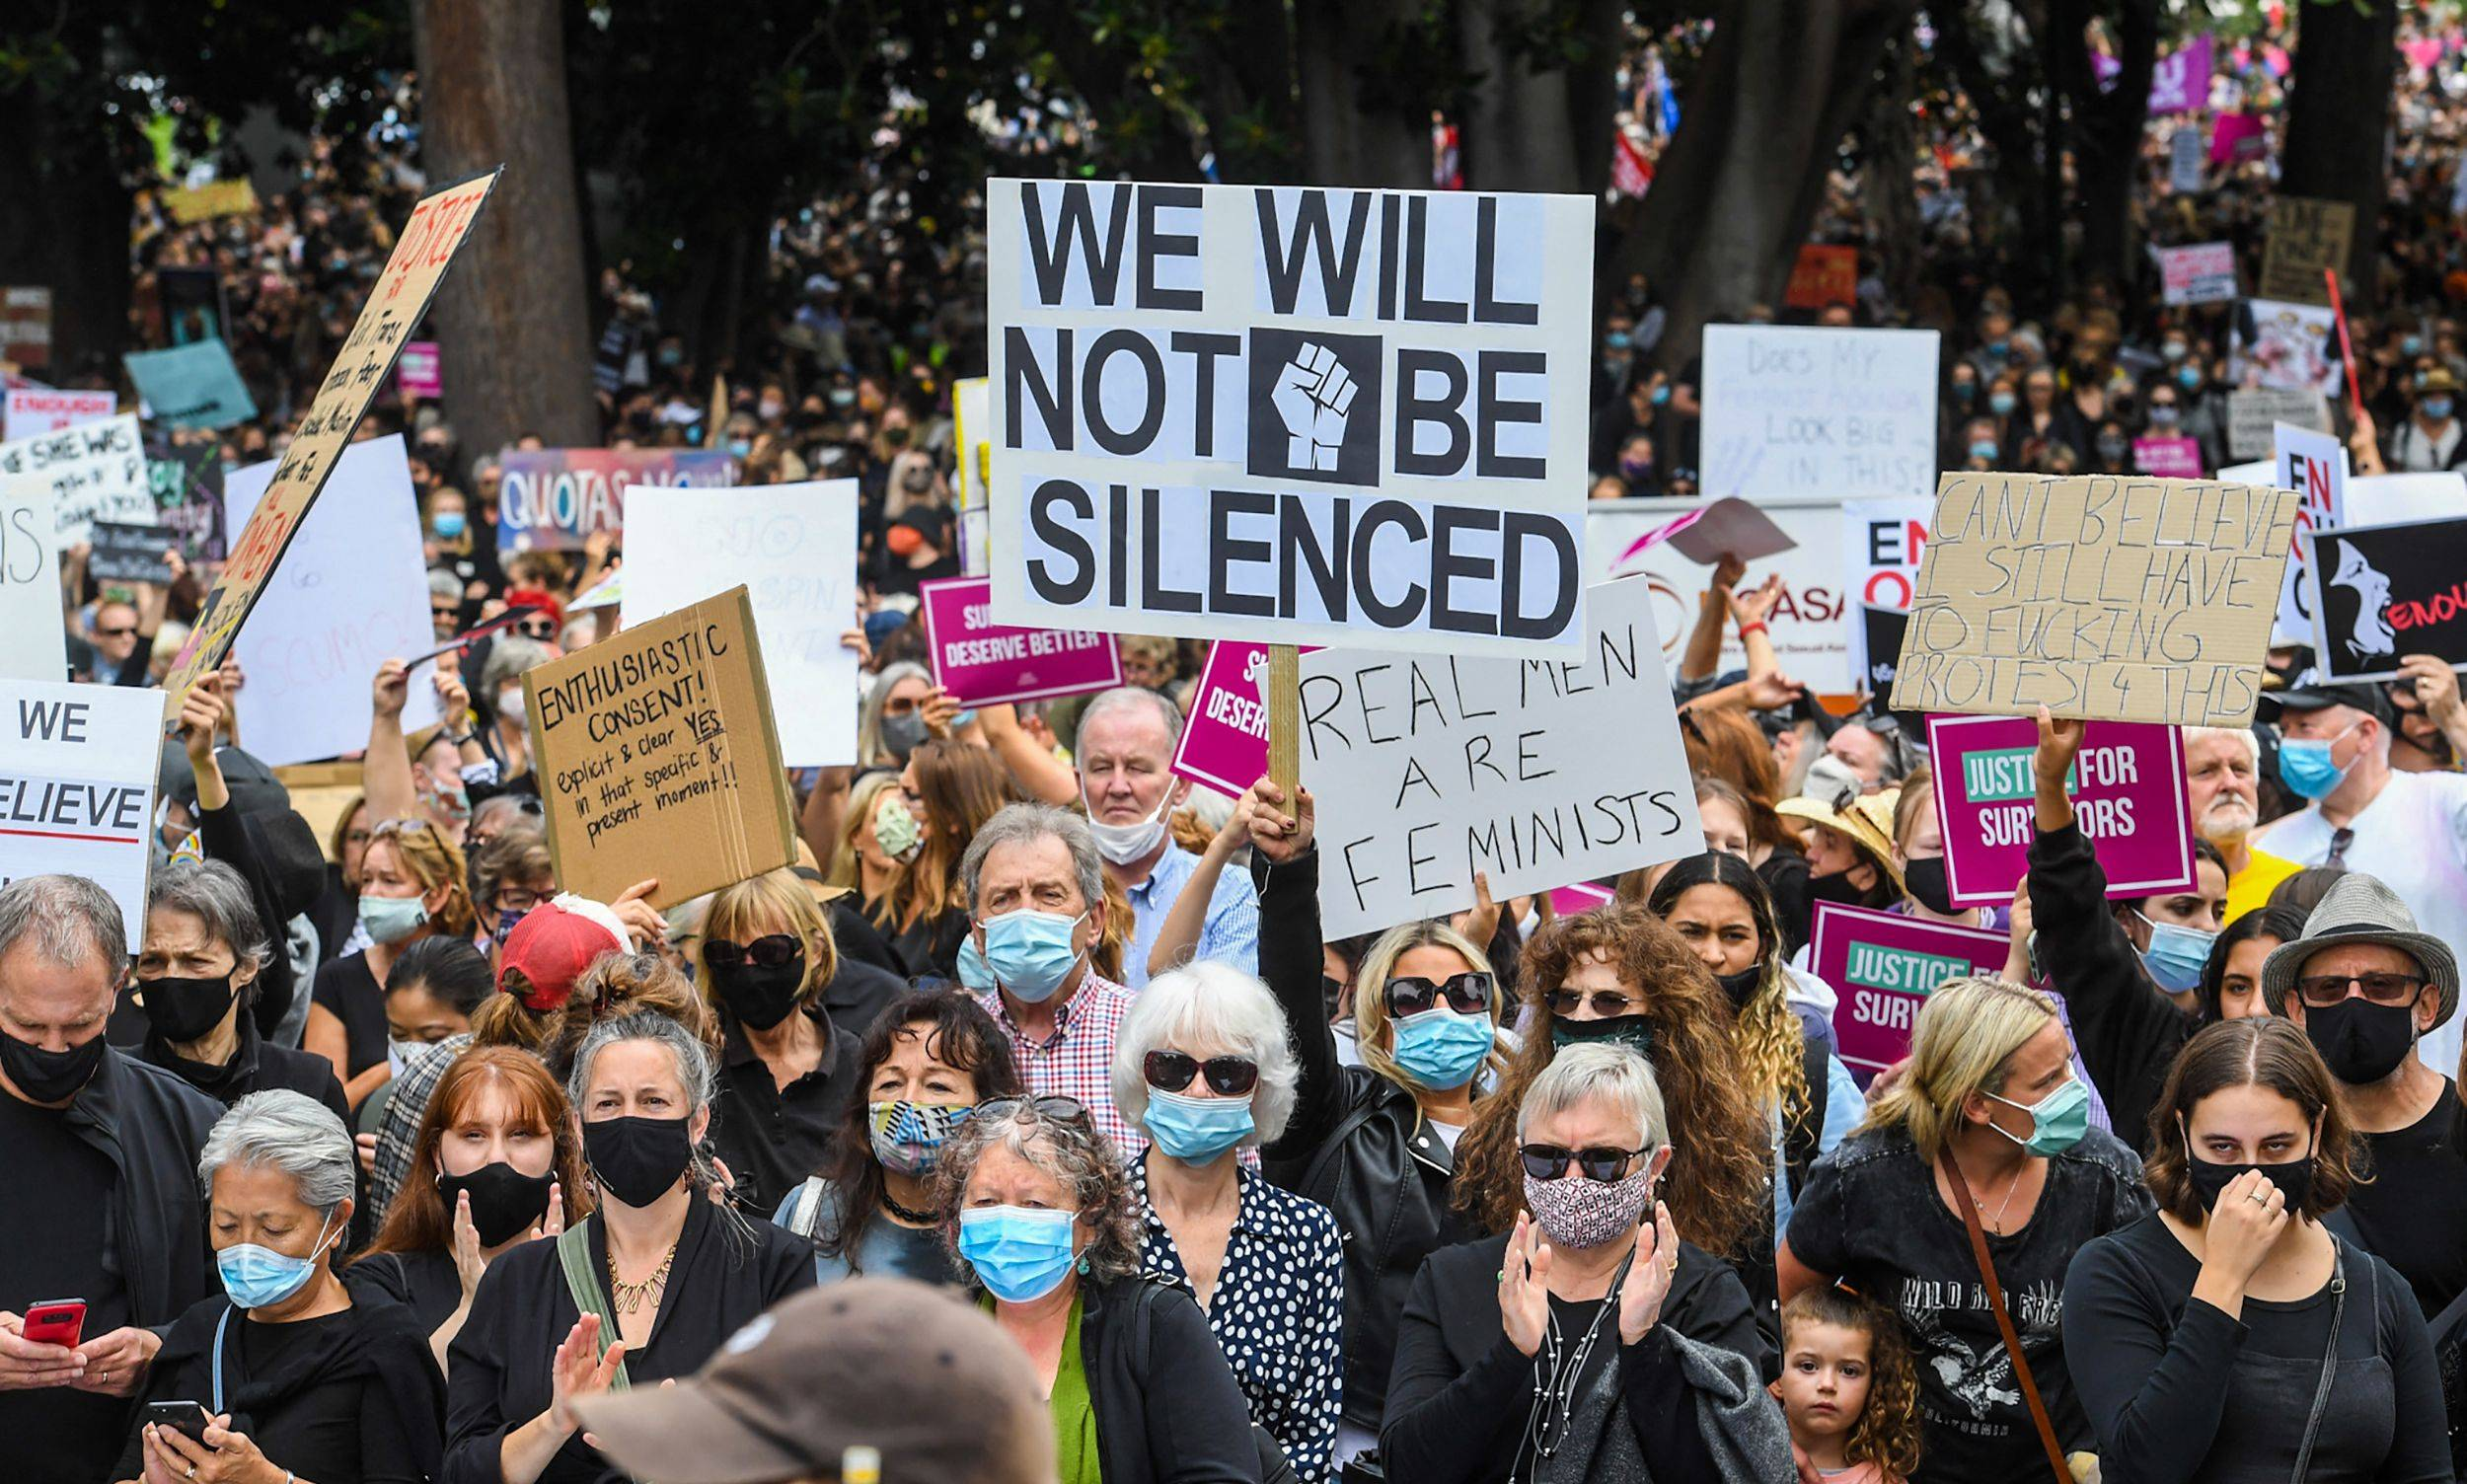 People attend a protest against sexual violence and gender inequality in Melbourne on Monday. | AFP-JIJI